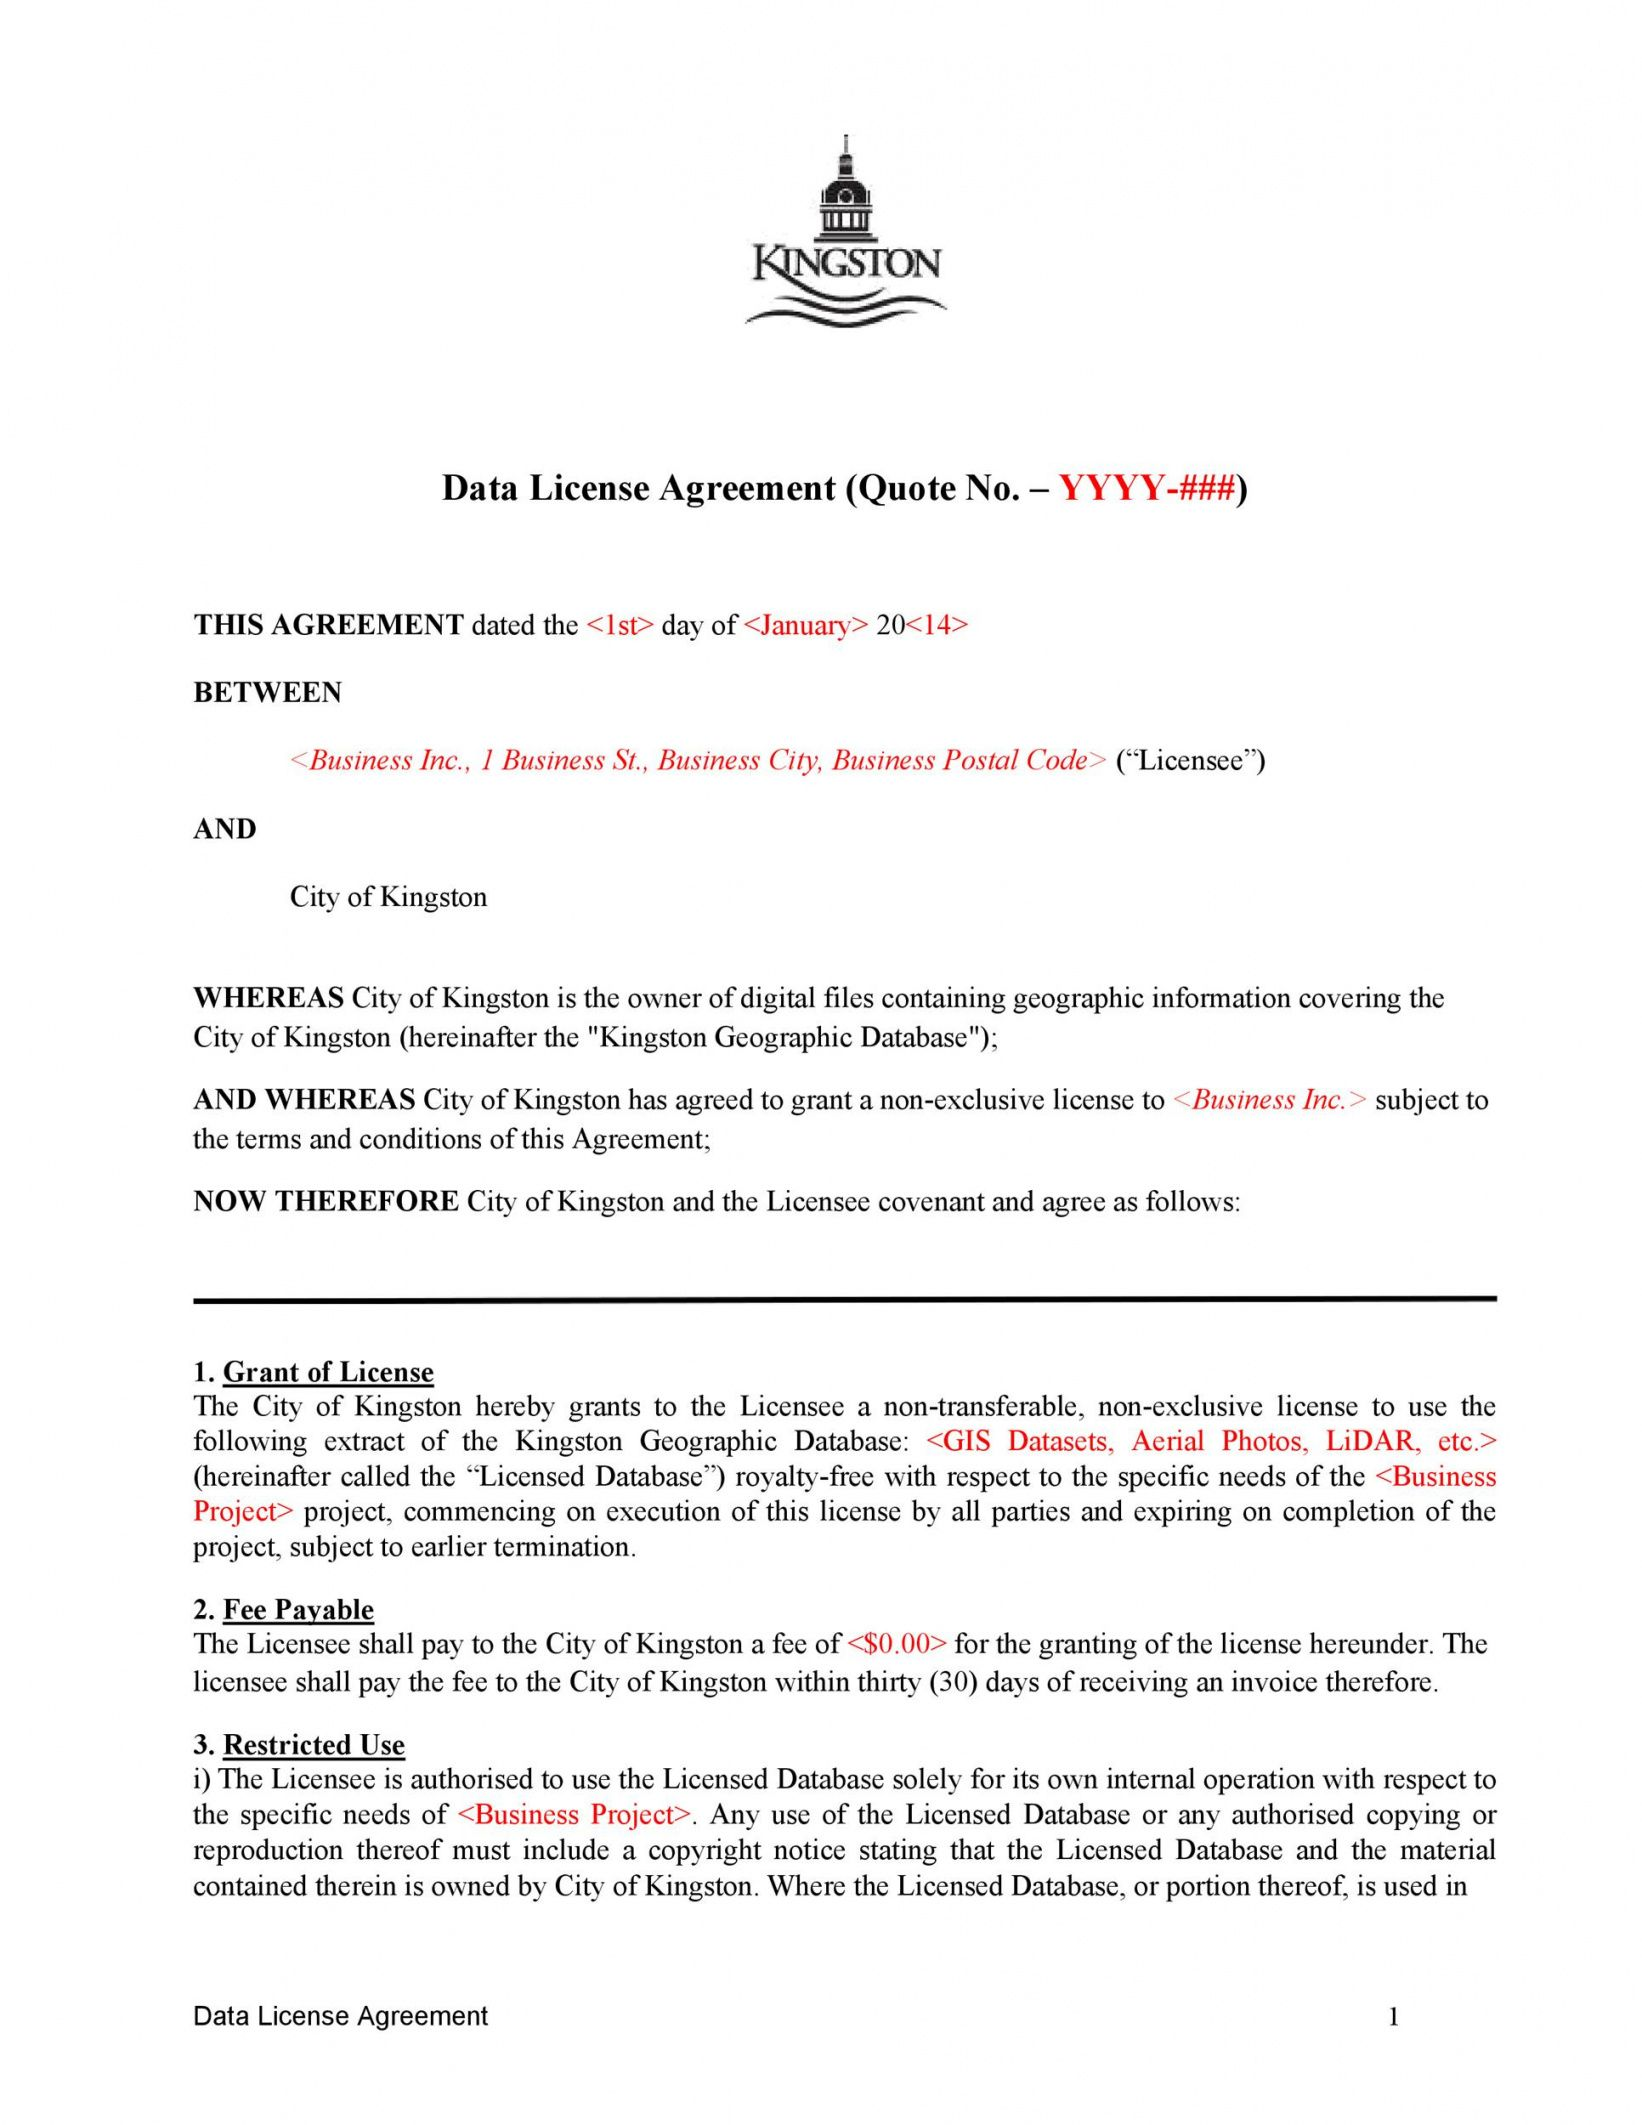 50 professional license agreement templates  templatelab royalty free license agreement template excel